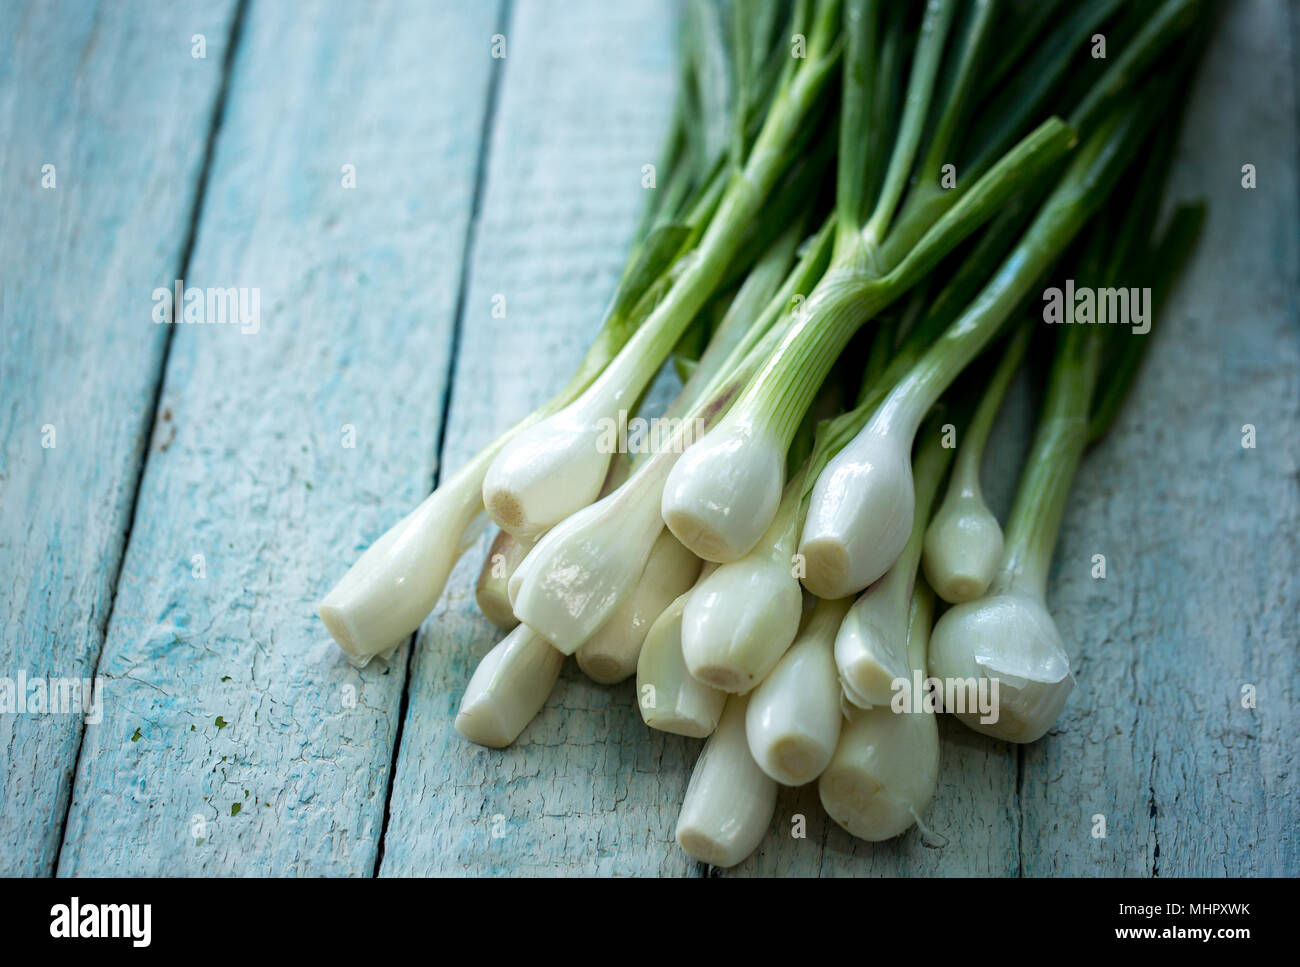 green purified onions - Stock Image